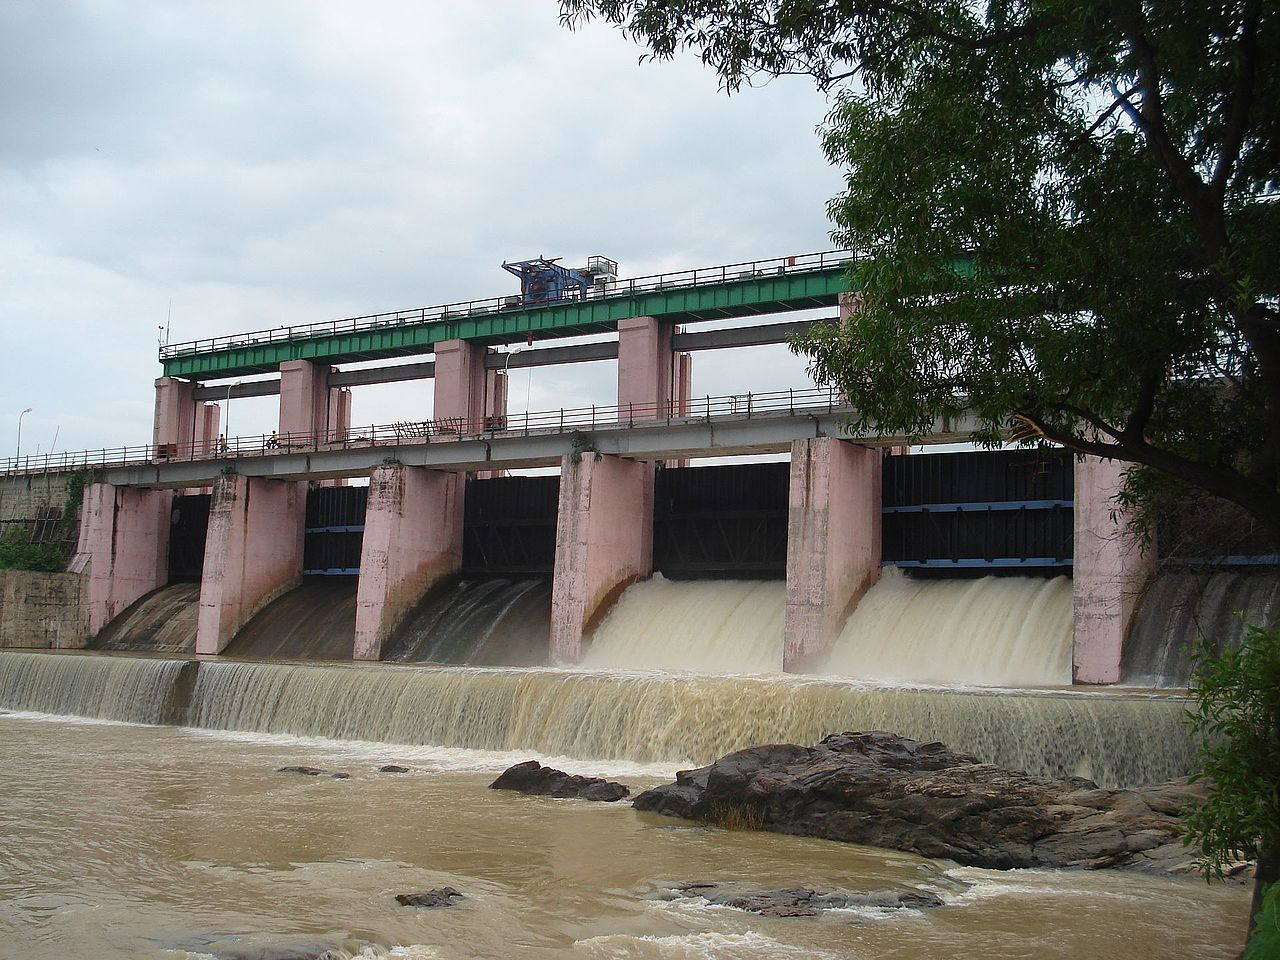 Garga Dam - Top Place In Bokaro That Every Inquisitive Tourist Must Visit